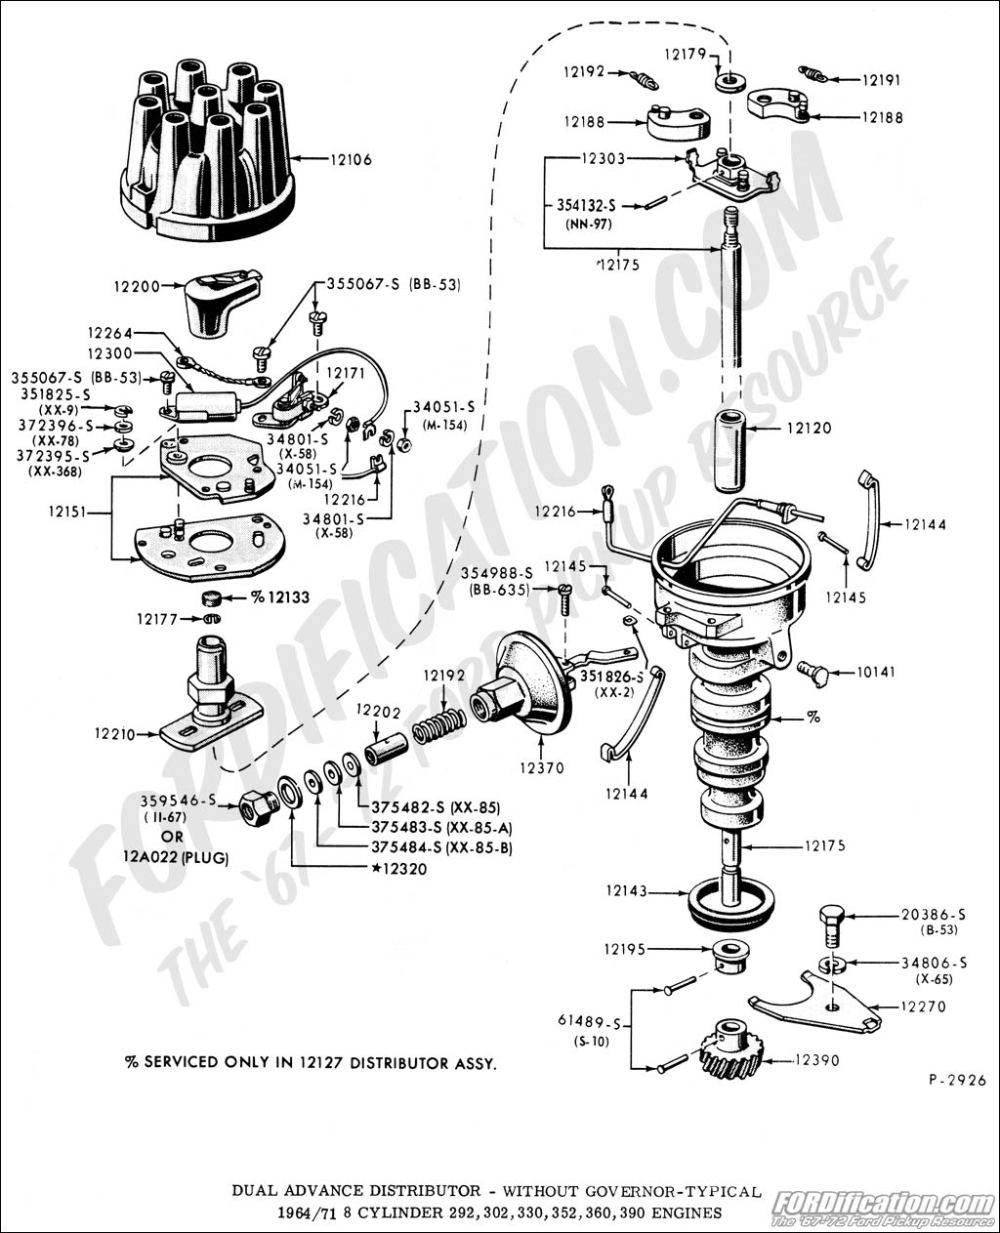 medium resolution of ford 302 spark plug wiring diagram wiring library83 ford 302 distributor wiring diagram wiring diagrams schematics